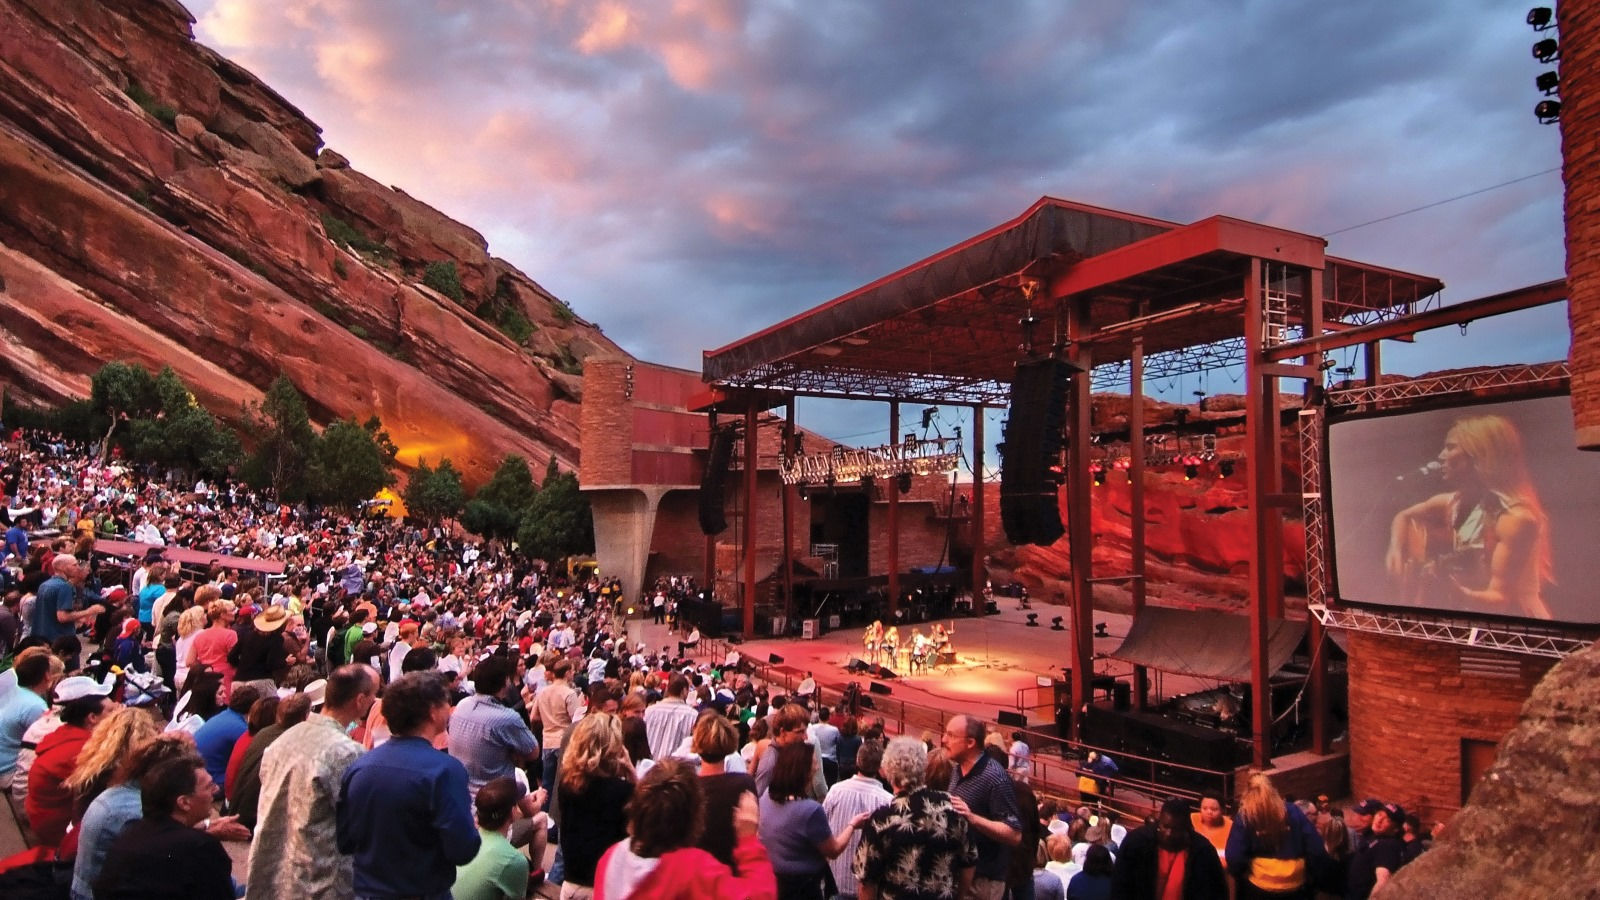 Things to Do in Denver - Red Rocks Amphitheater